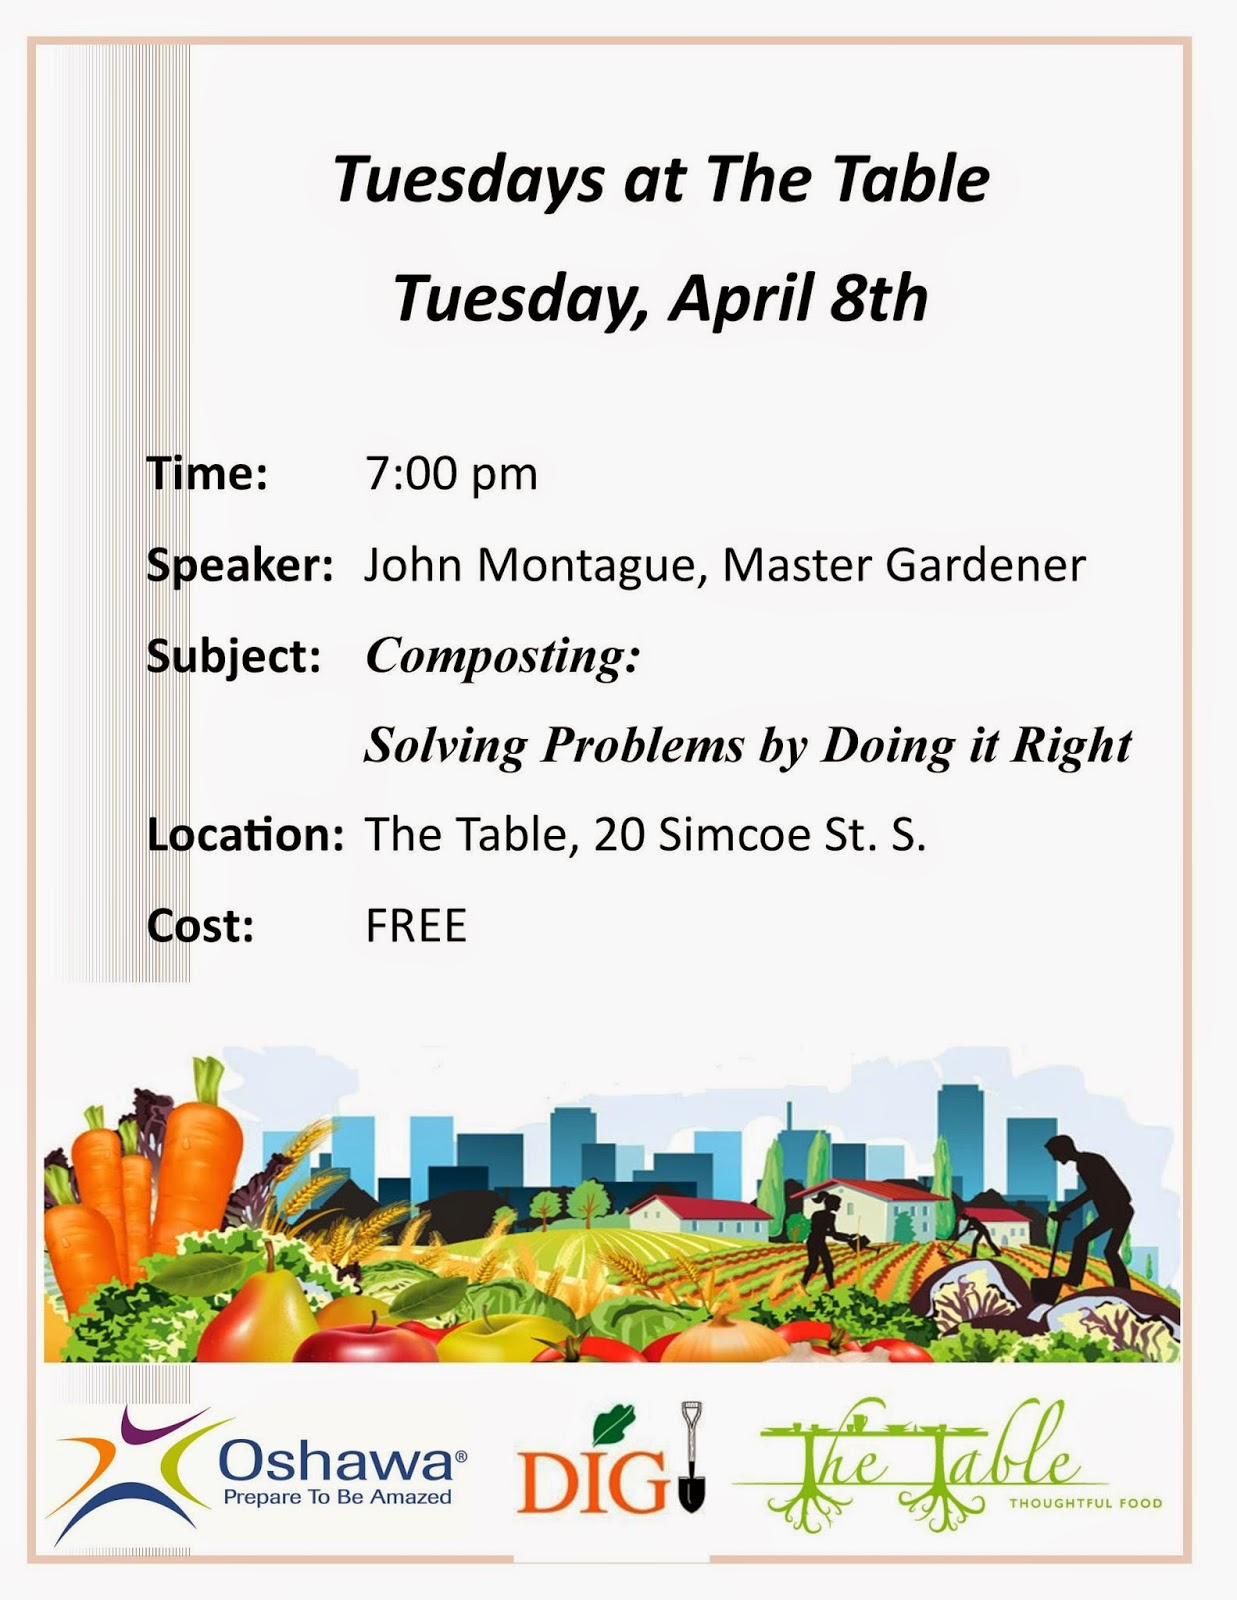 "Tuesdays at the Table, April 8, 7:00 p.m. featuring John Montague, Master Gardener, discussing ""Composting:  solving problems by doing it right.  Location:  The Table, 20 Simcoe St. S., Oshawa.  Free."